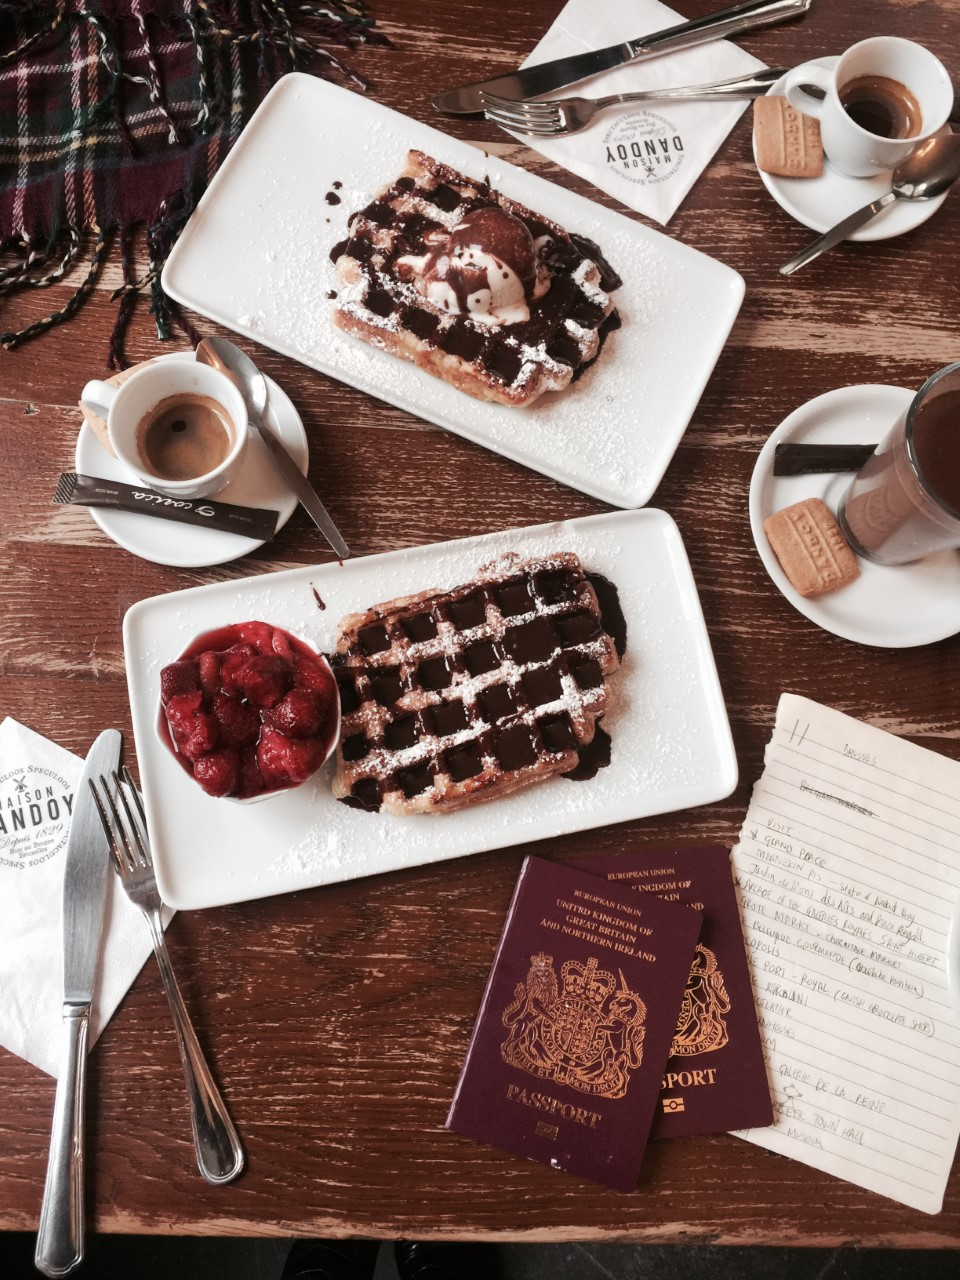 MAISON DANDOY - No better start to the Trip than with Belgium waffles for breakfast!Best waffles in town!